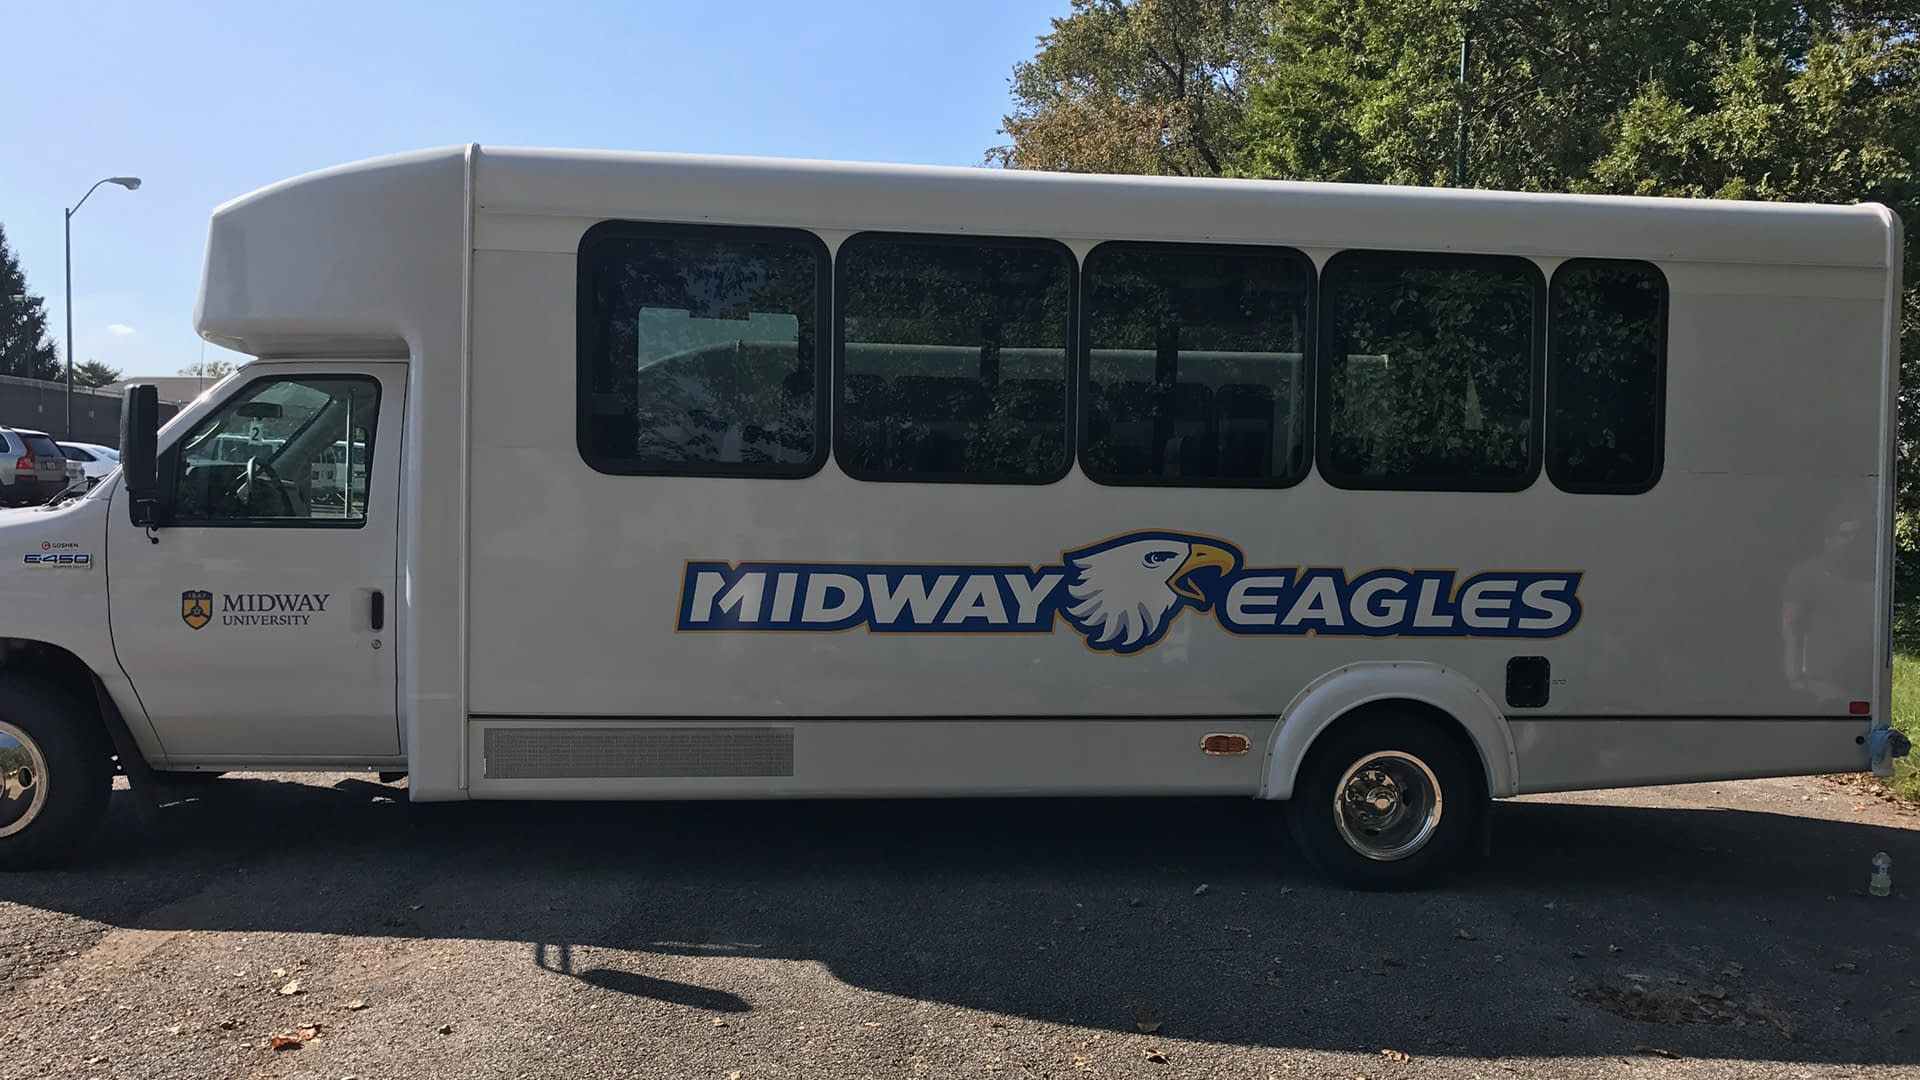 Midway eagles bus decal